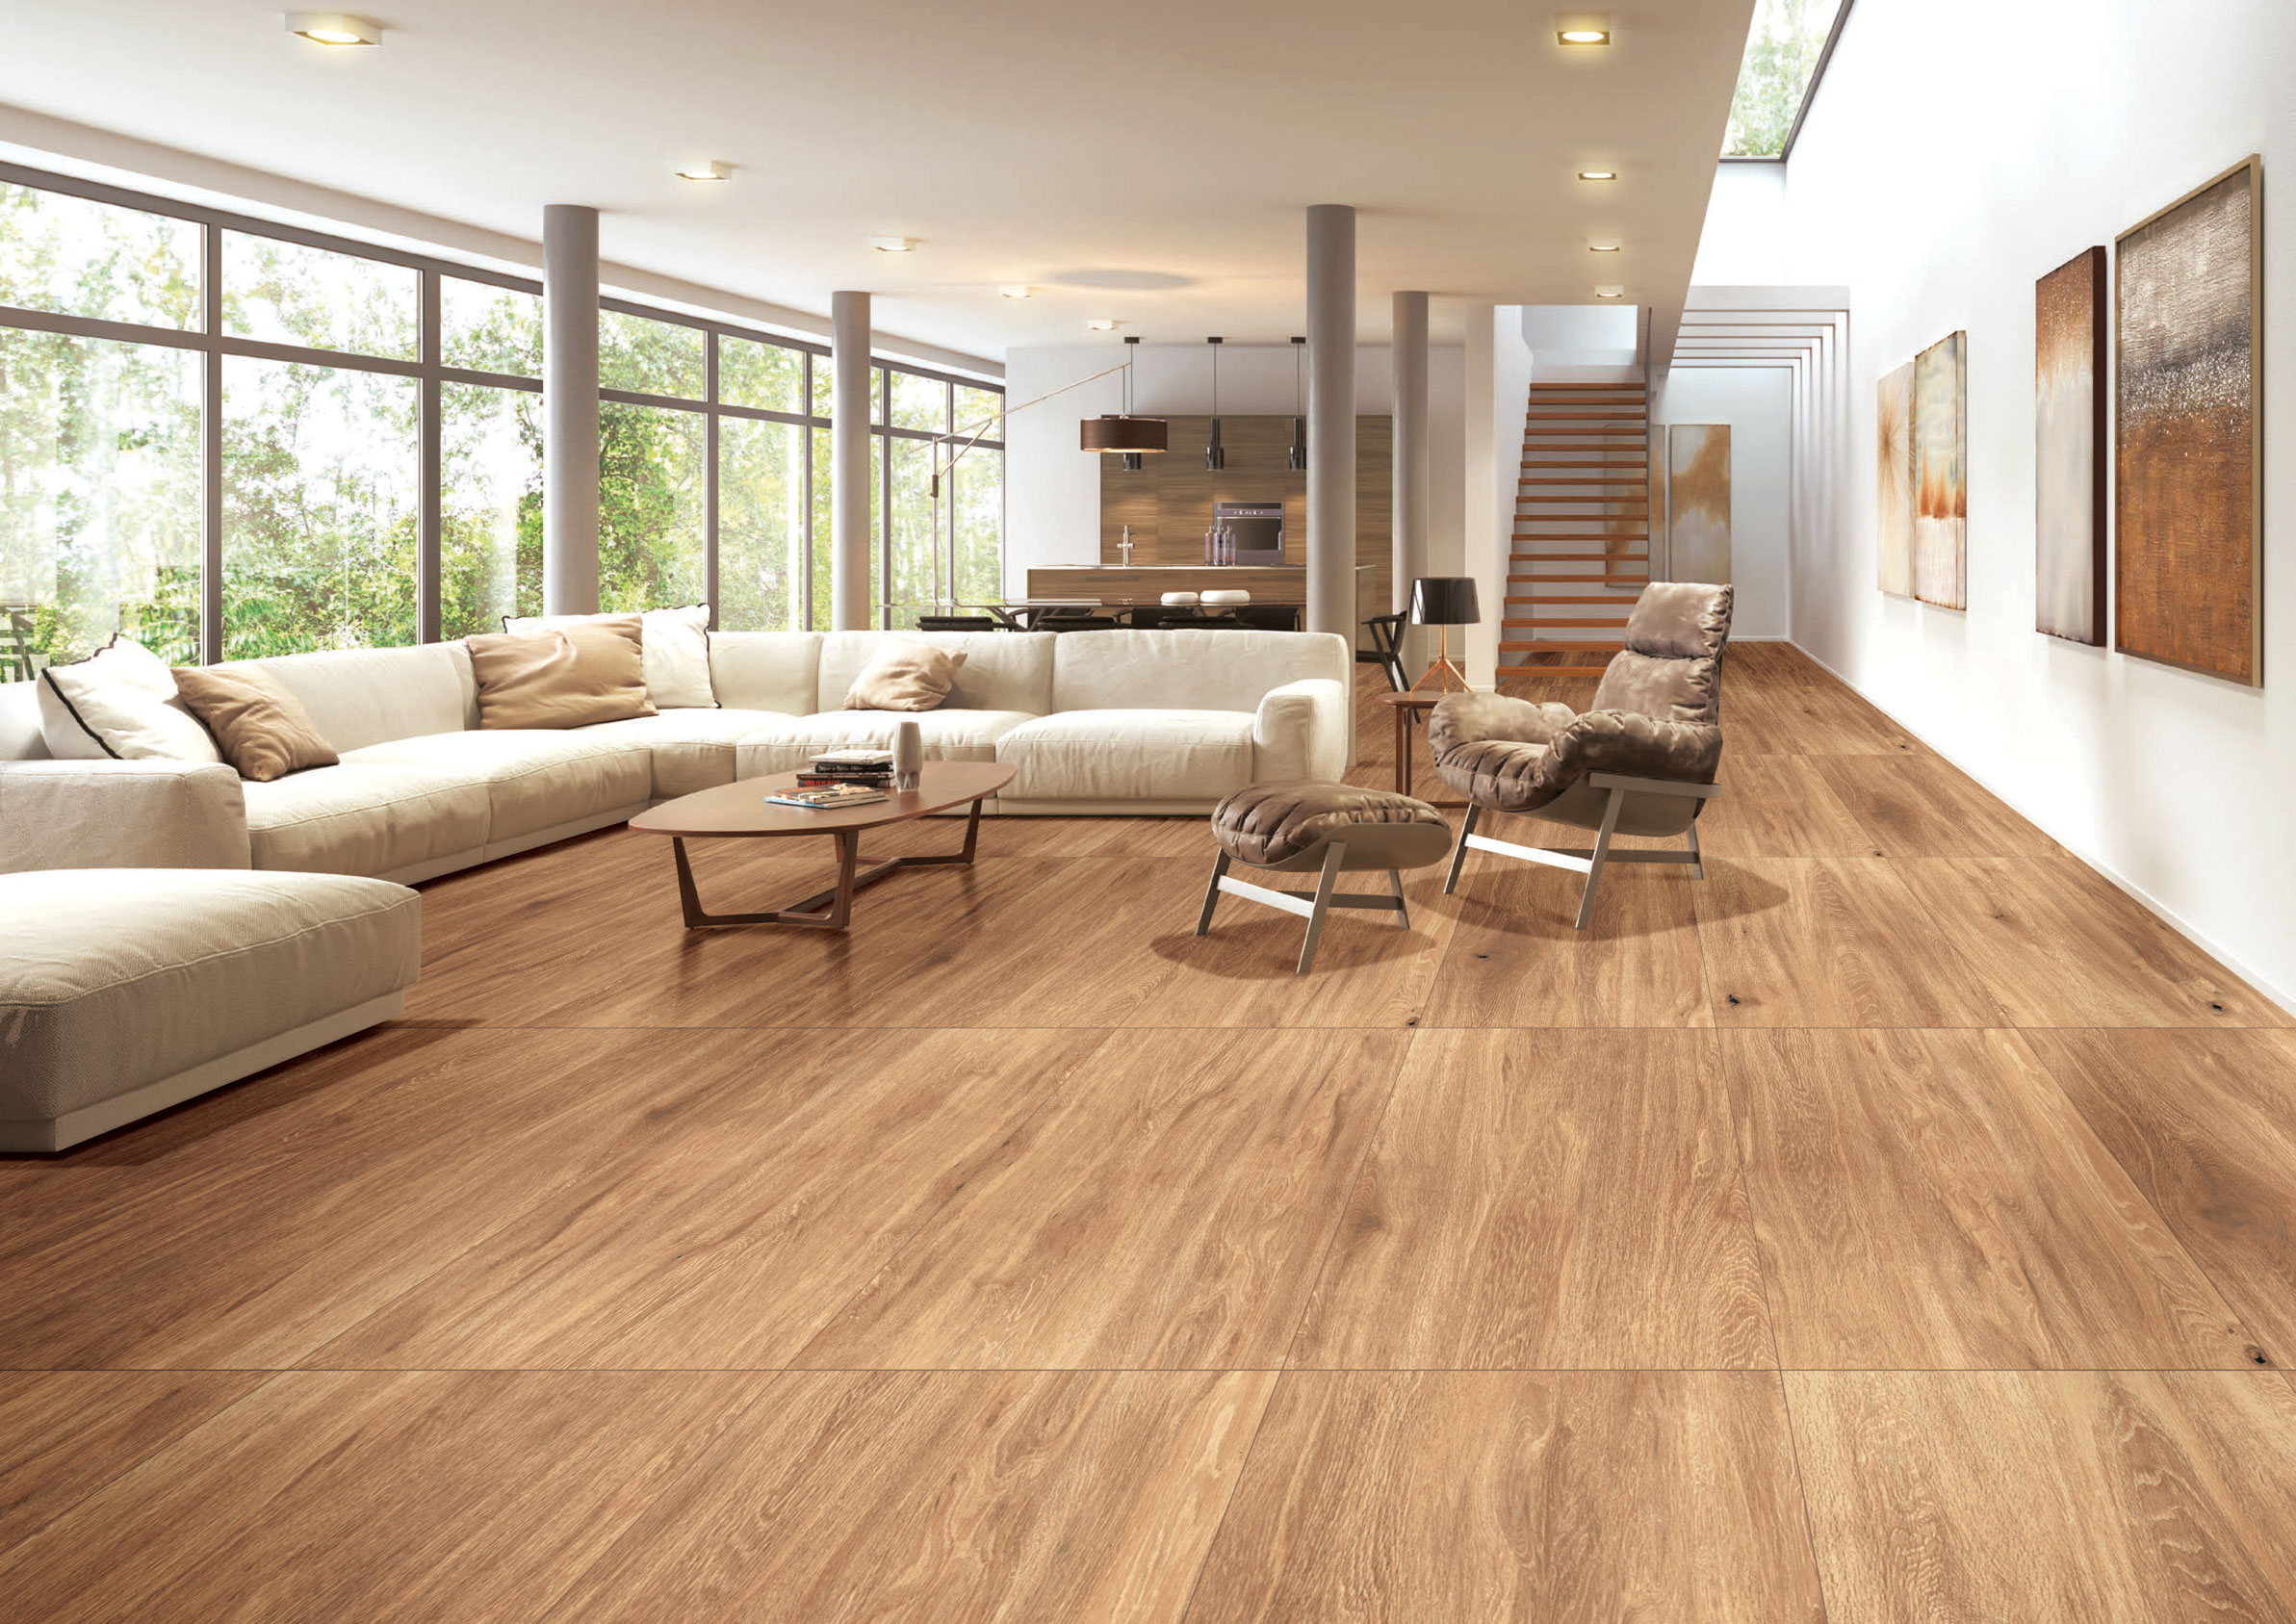 Why Ceramic Tiles Are A Great Option for Your Floors and Walls